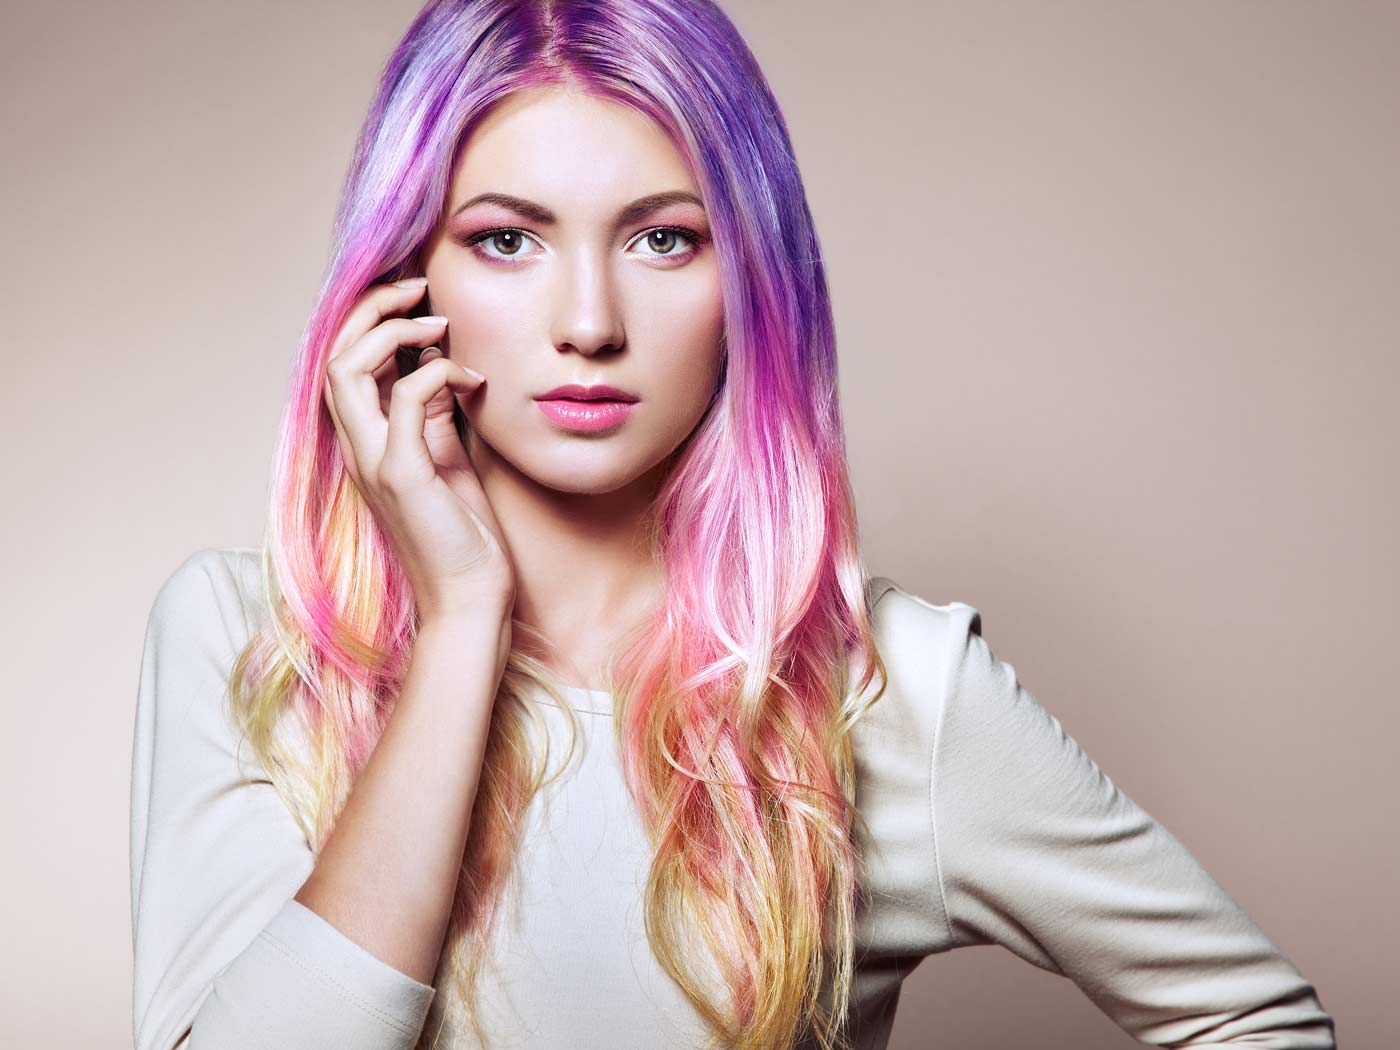 freelance model with pink and purple hair at photoshoot